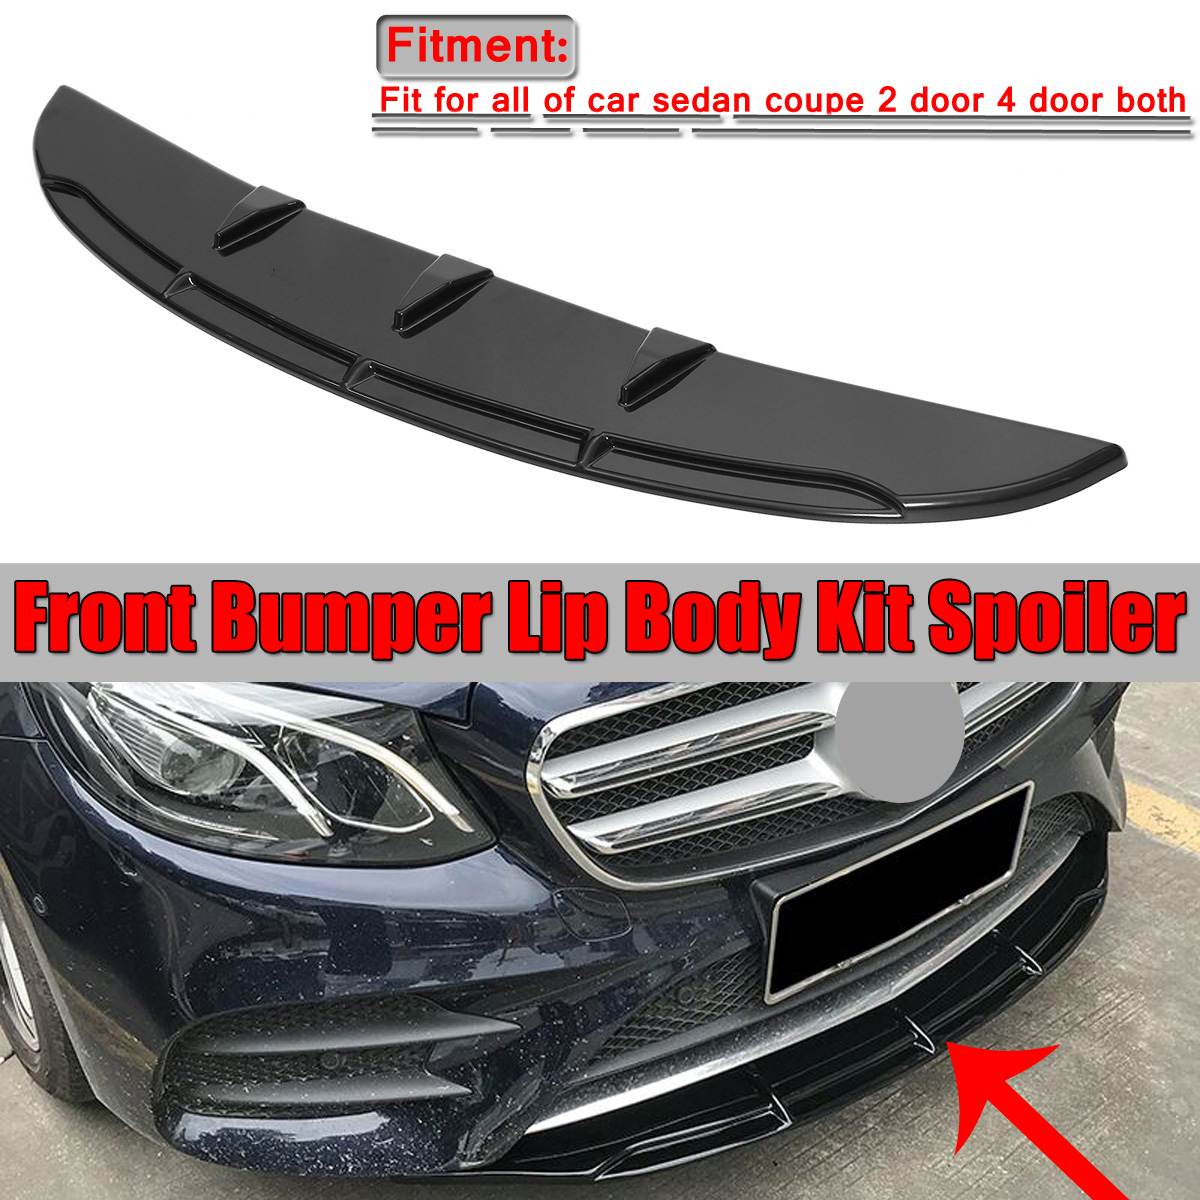 1xUniversal Car Front Bumper Lip  Spoiler Diffuser Fins Body Kit Car styling For Benz For BMW For Civic Glossy Black/Carbon Look|Bumpers| |  - title=